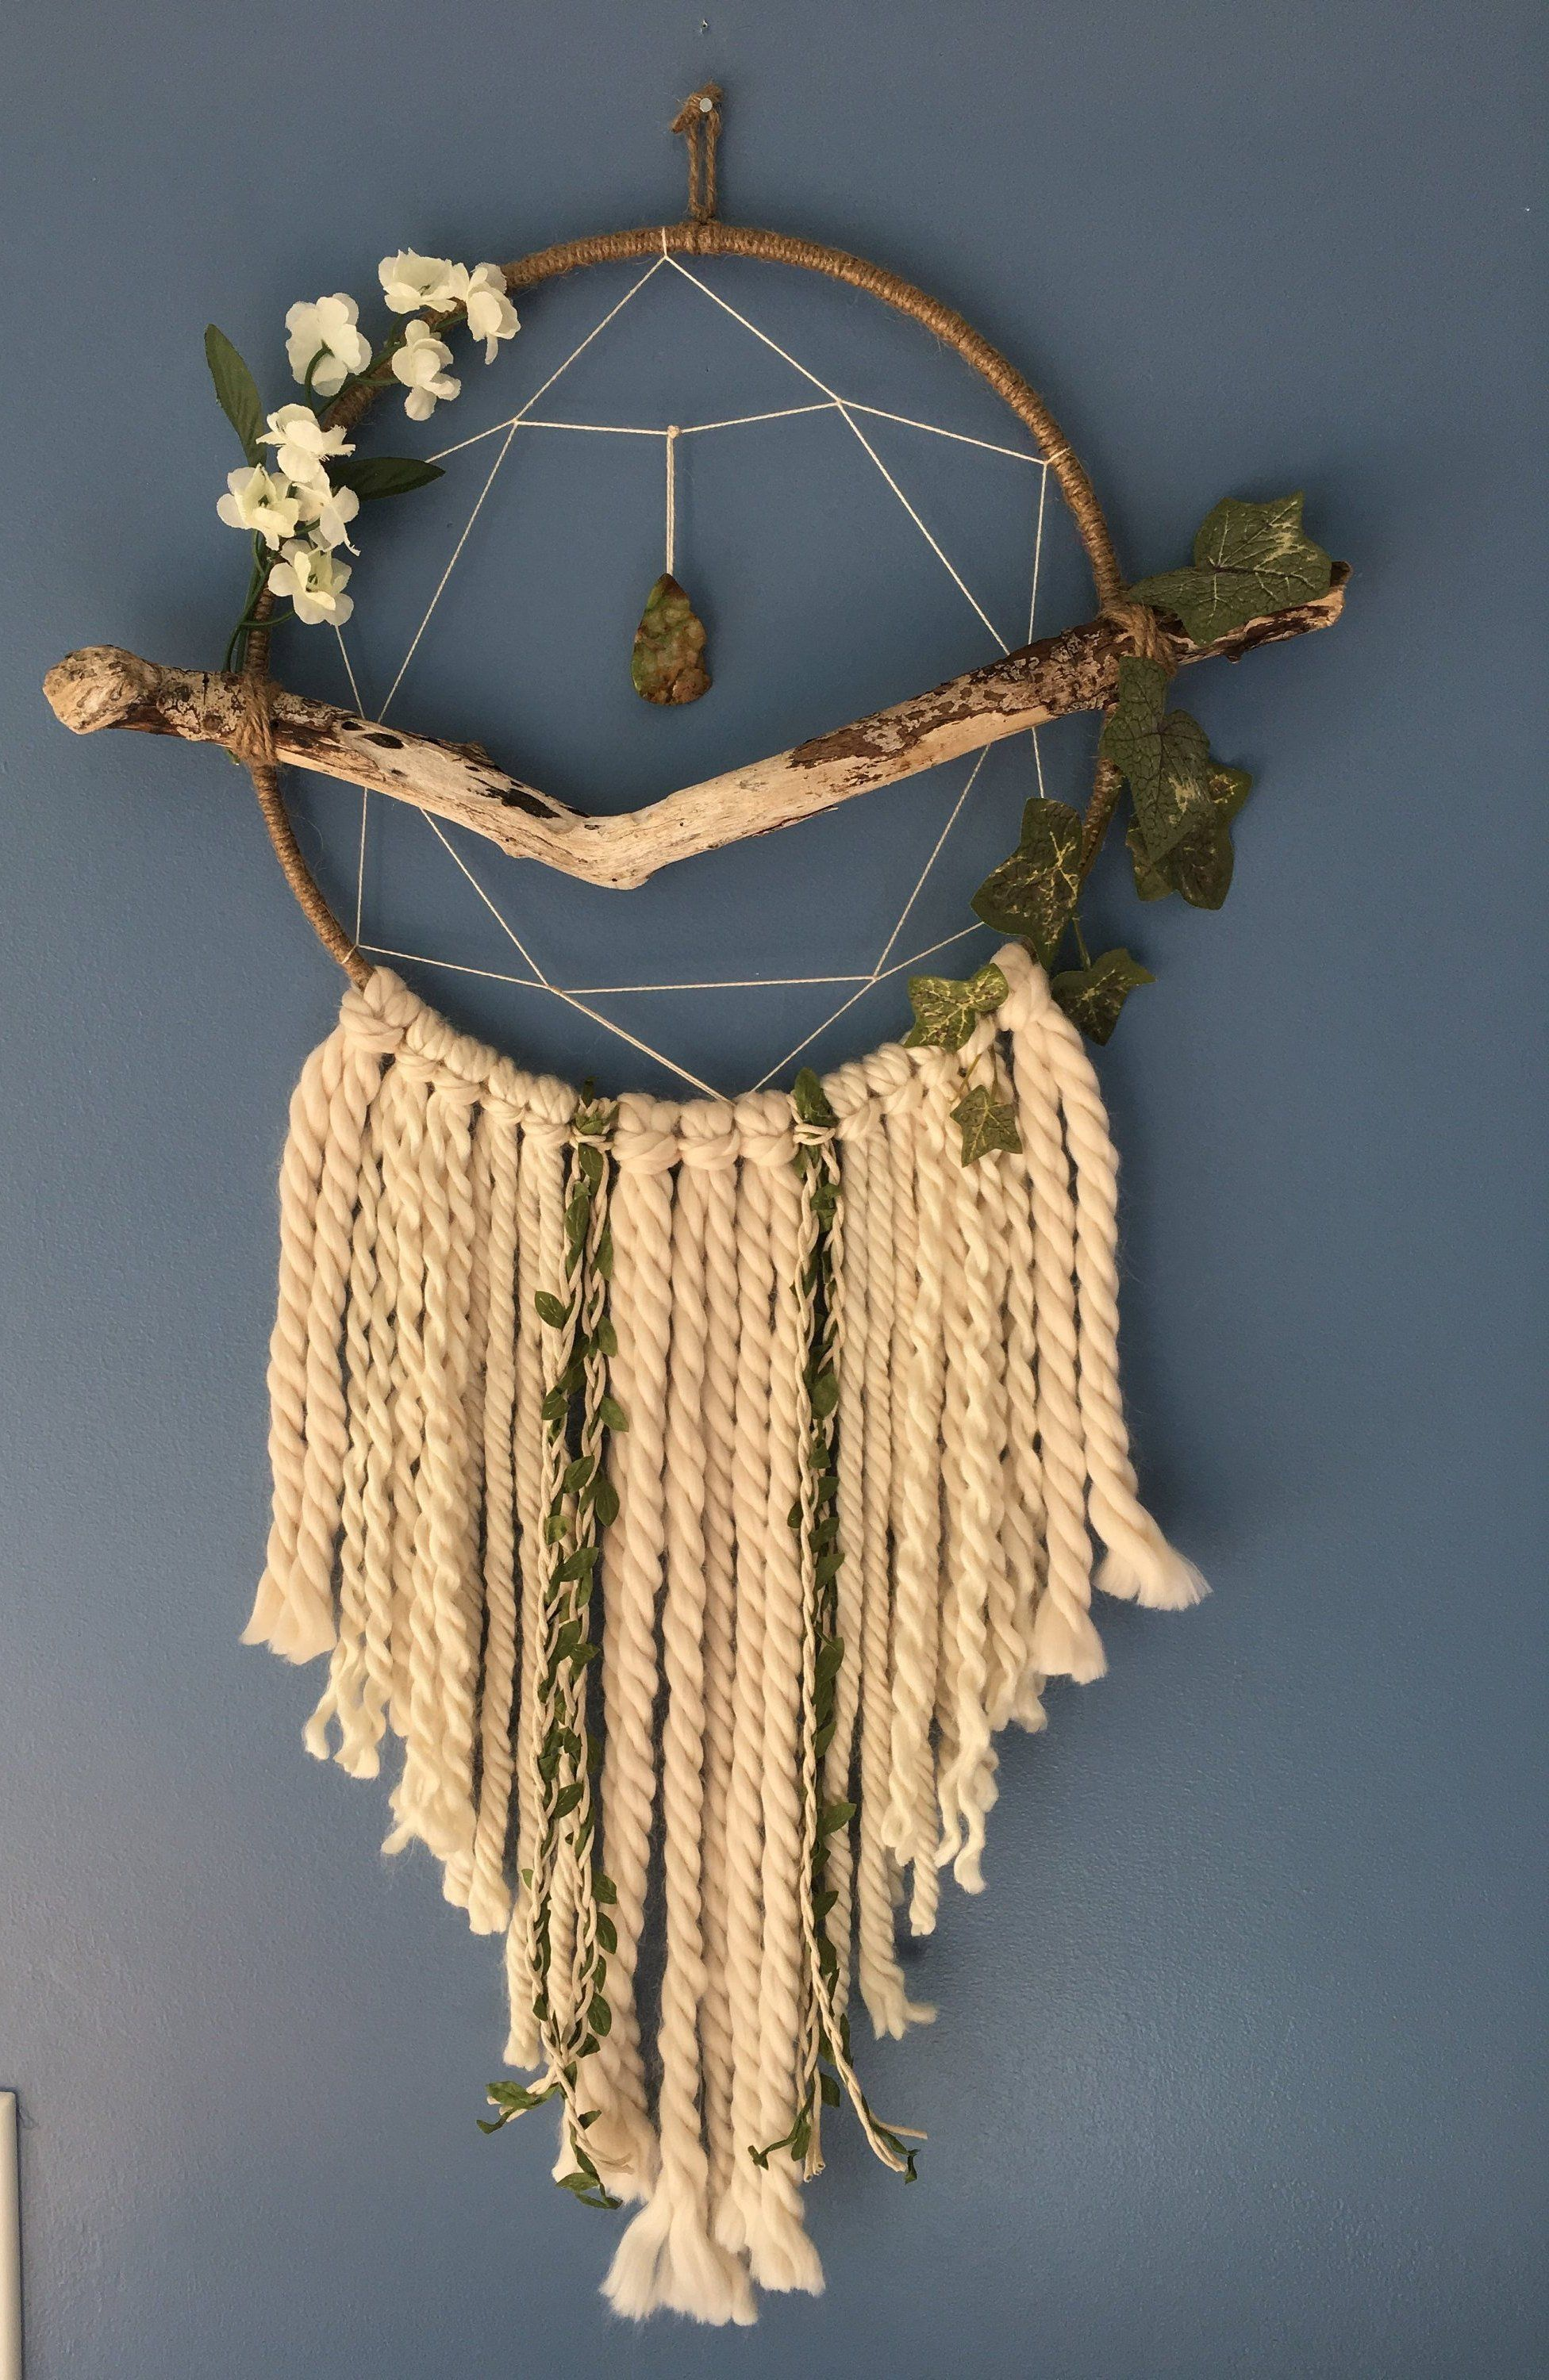 Sprite driftwood dreamcatcher | Dream catcher wall hanging | Boho dreamcatcher | Shabby chic wall art | Boho nursery | Beige, Taupe #dreamcatcher